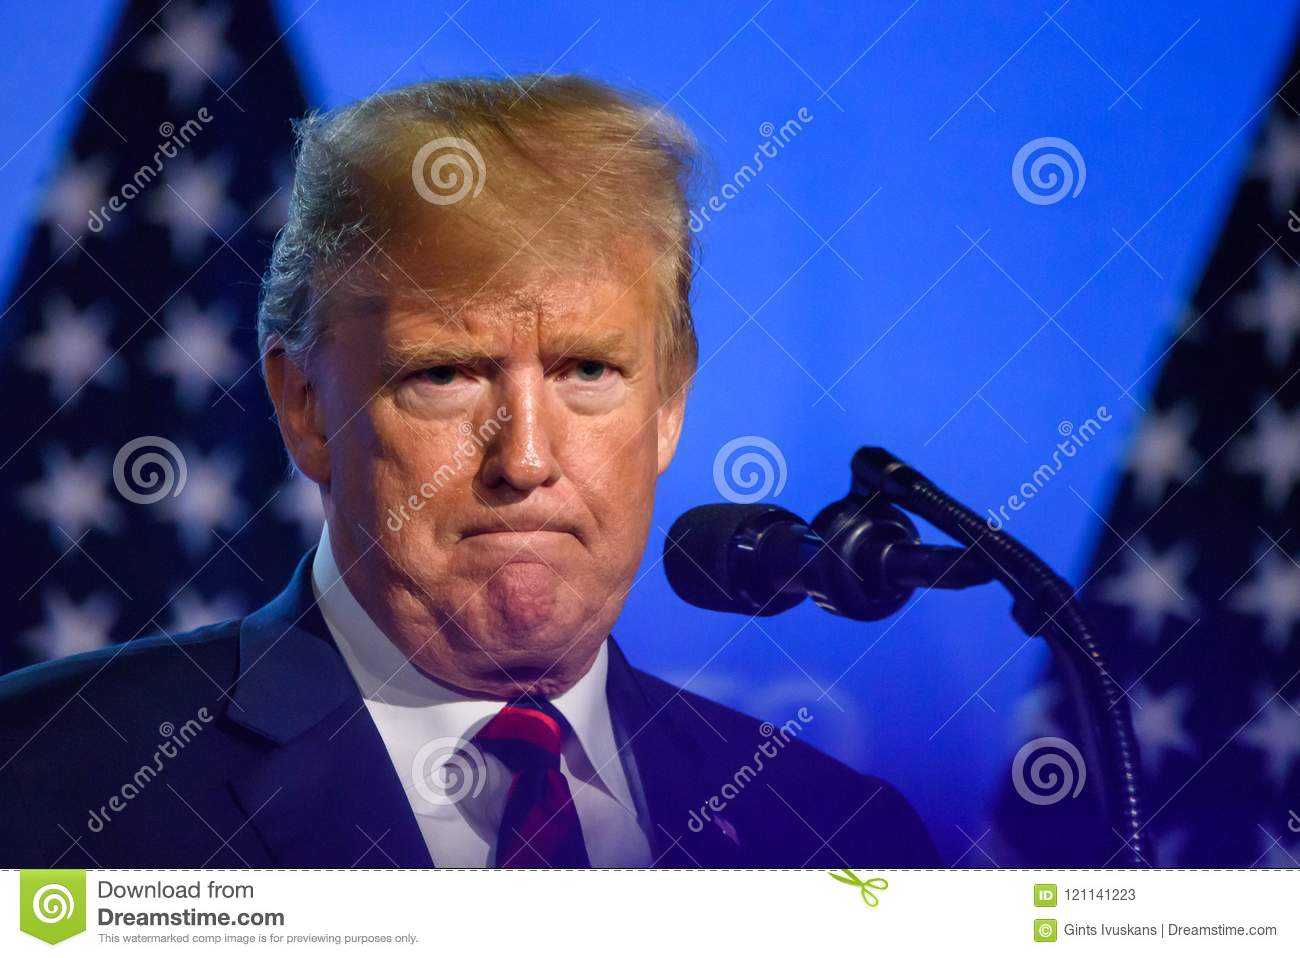 Donald Trump, President of United States of America, during press conference at NATO SUMMIT 2018